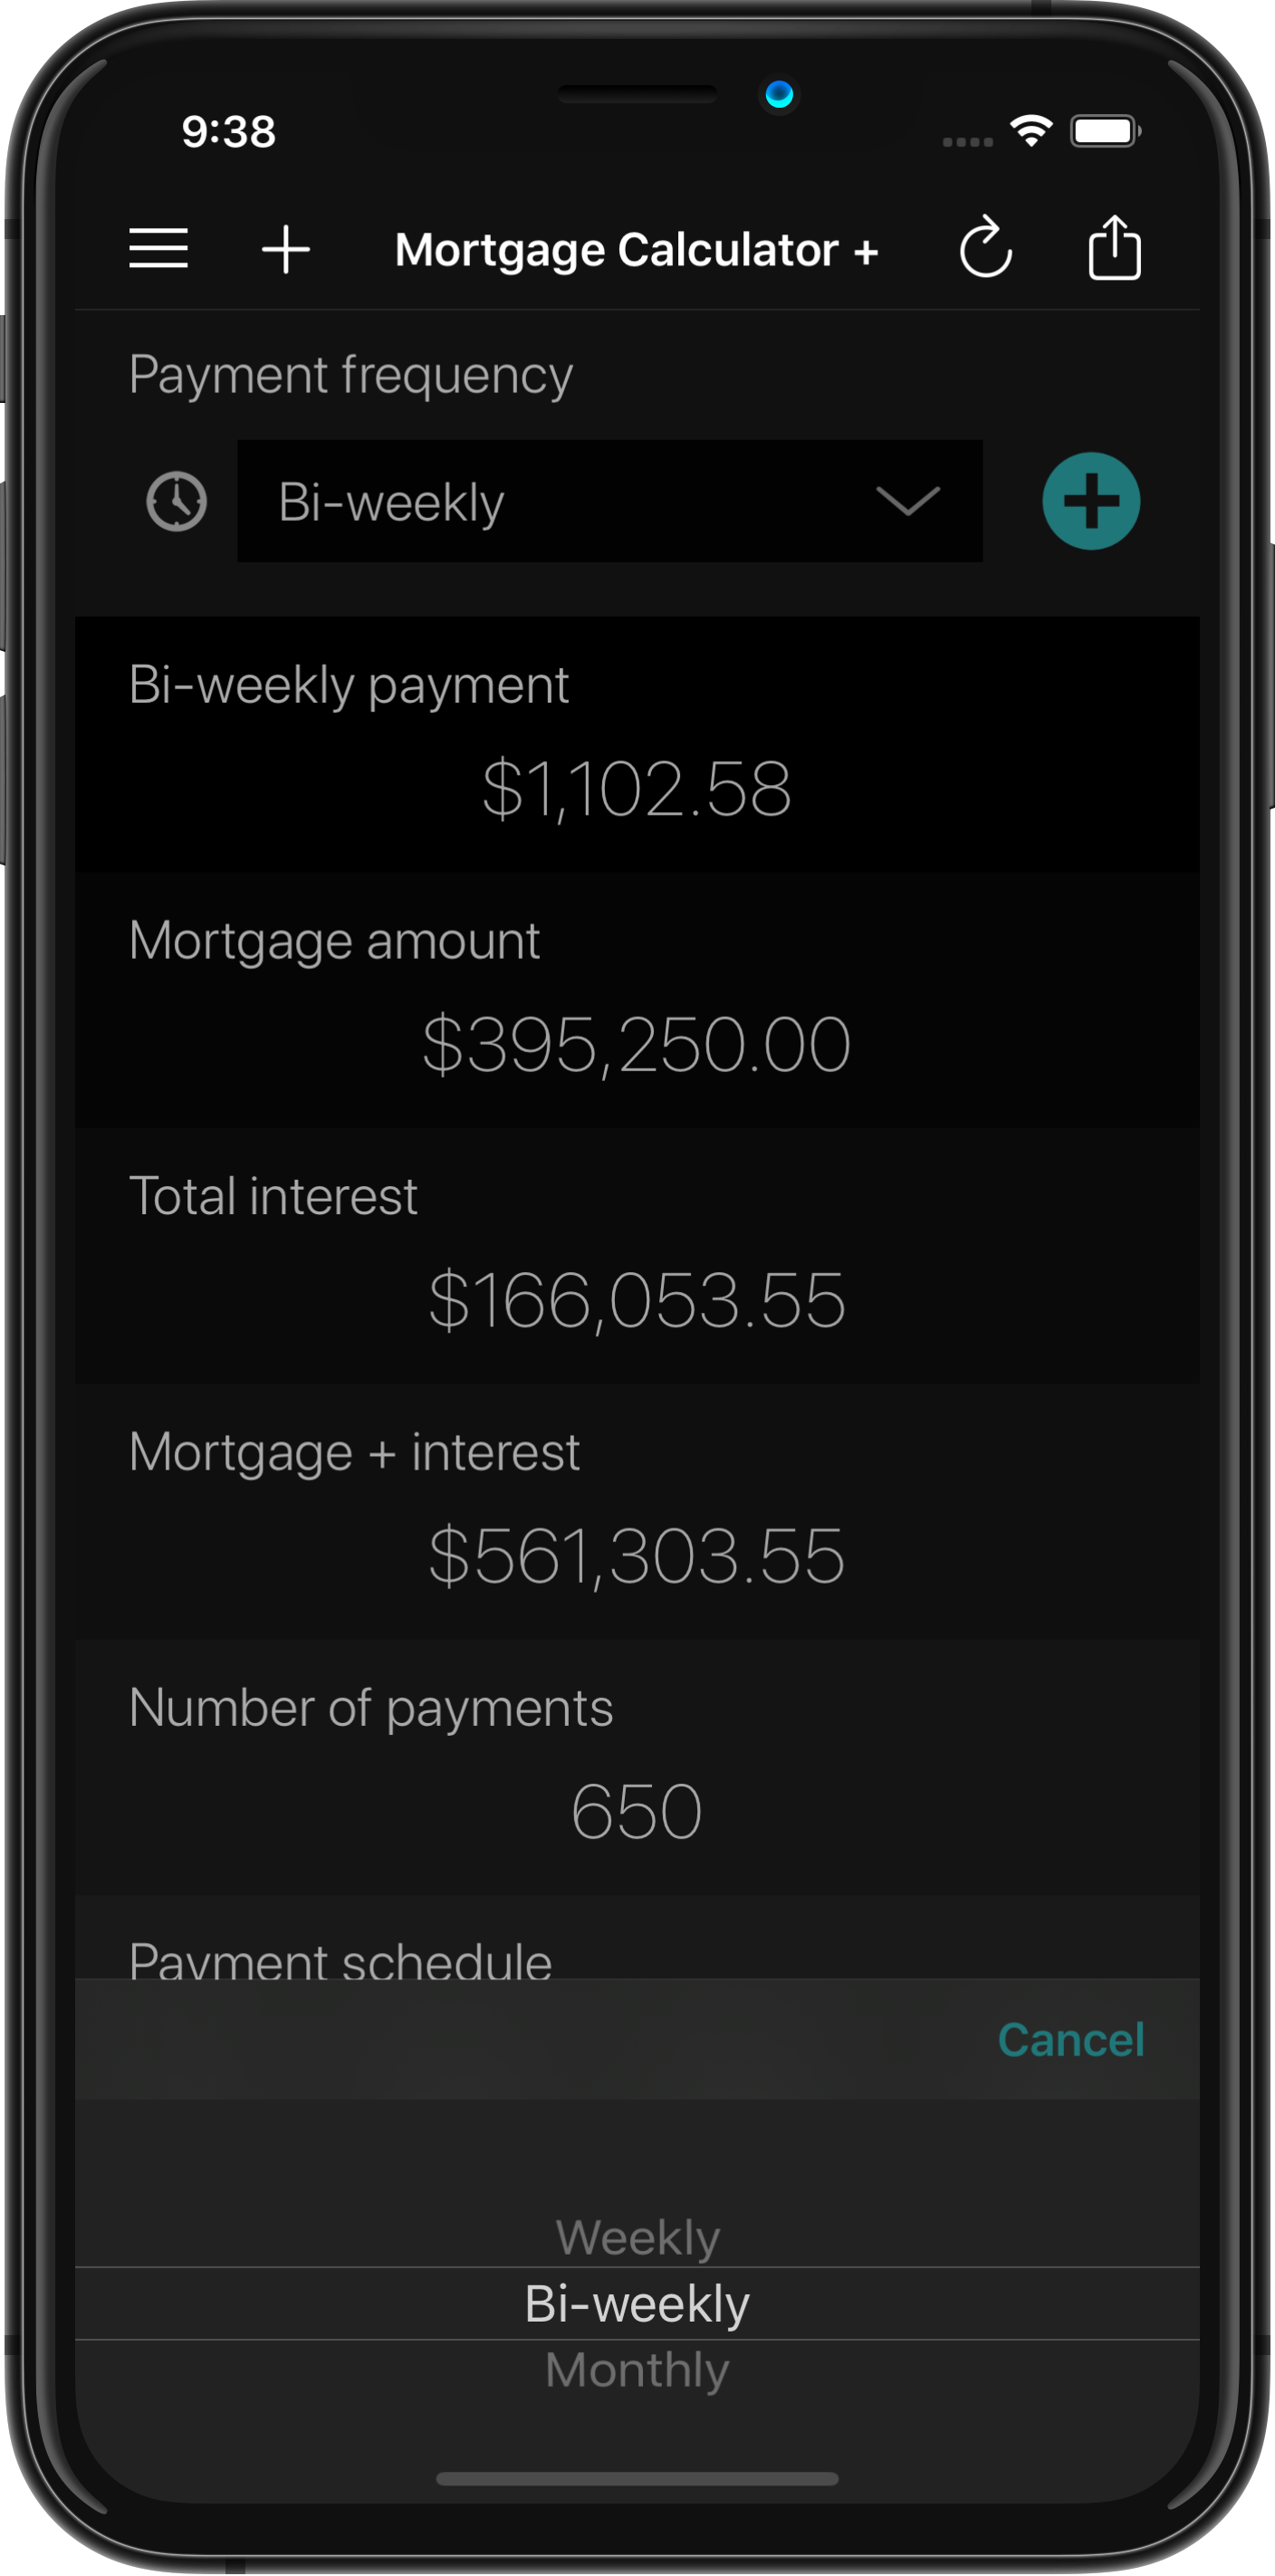 Mortgage Calculator + Payment Frequency